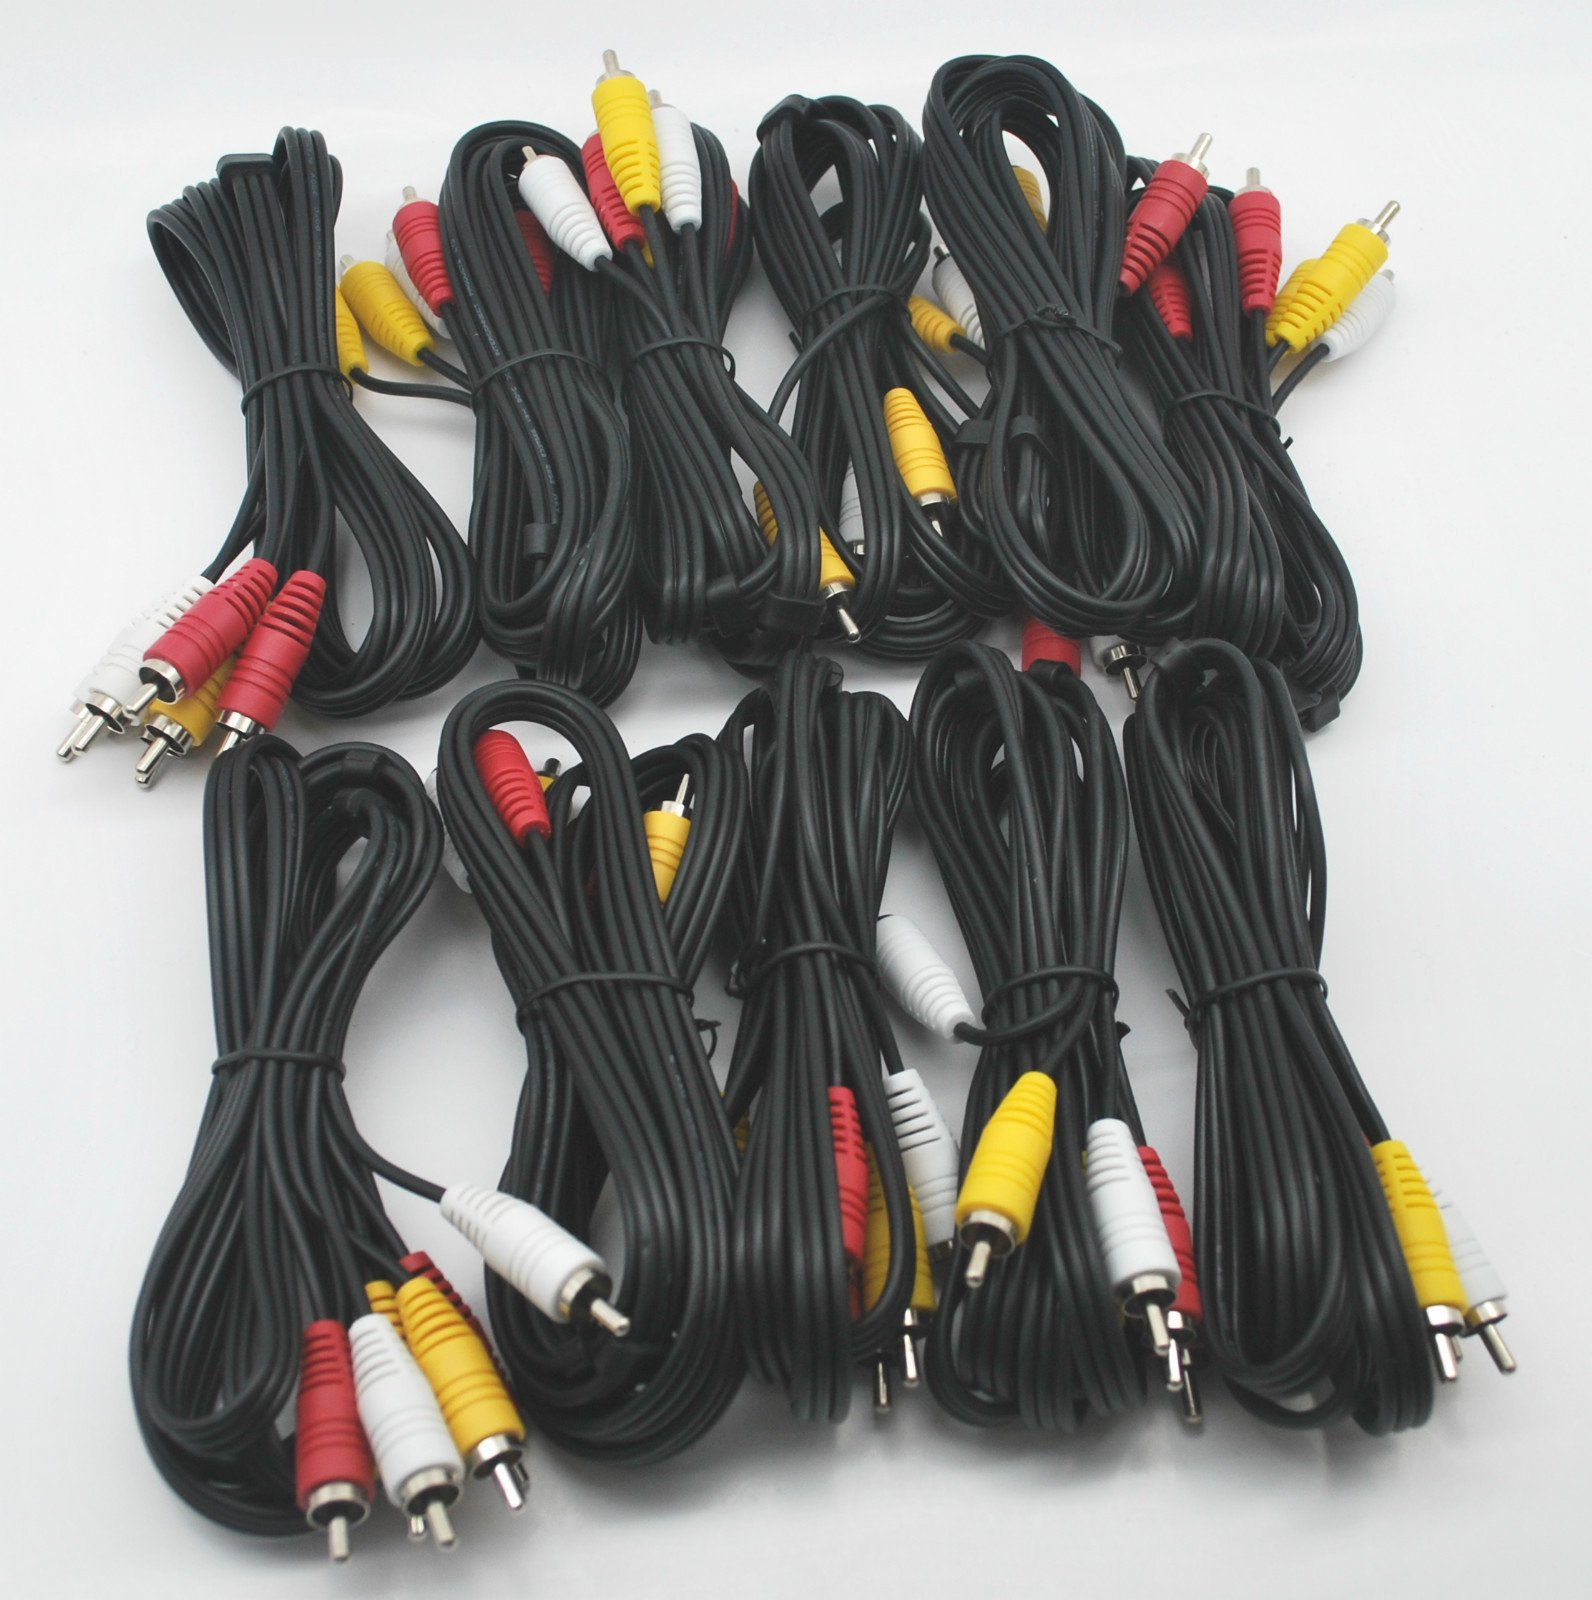 LOT OF 10 NEW 6 Ft RCA AUDIO/VIDEO COMPOSITE CABLES DVD/VCR/SAT YELLOW RED & WHITE CONNECTORS by DIRECTV